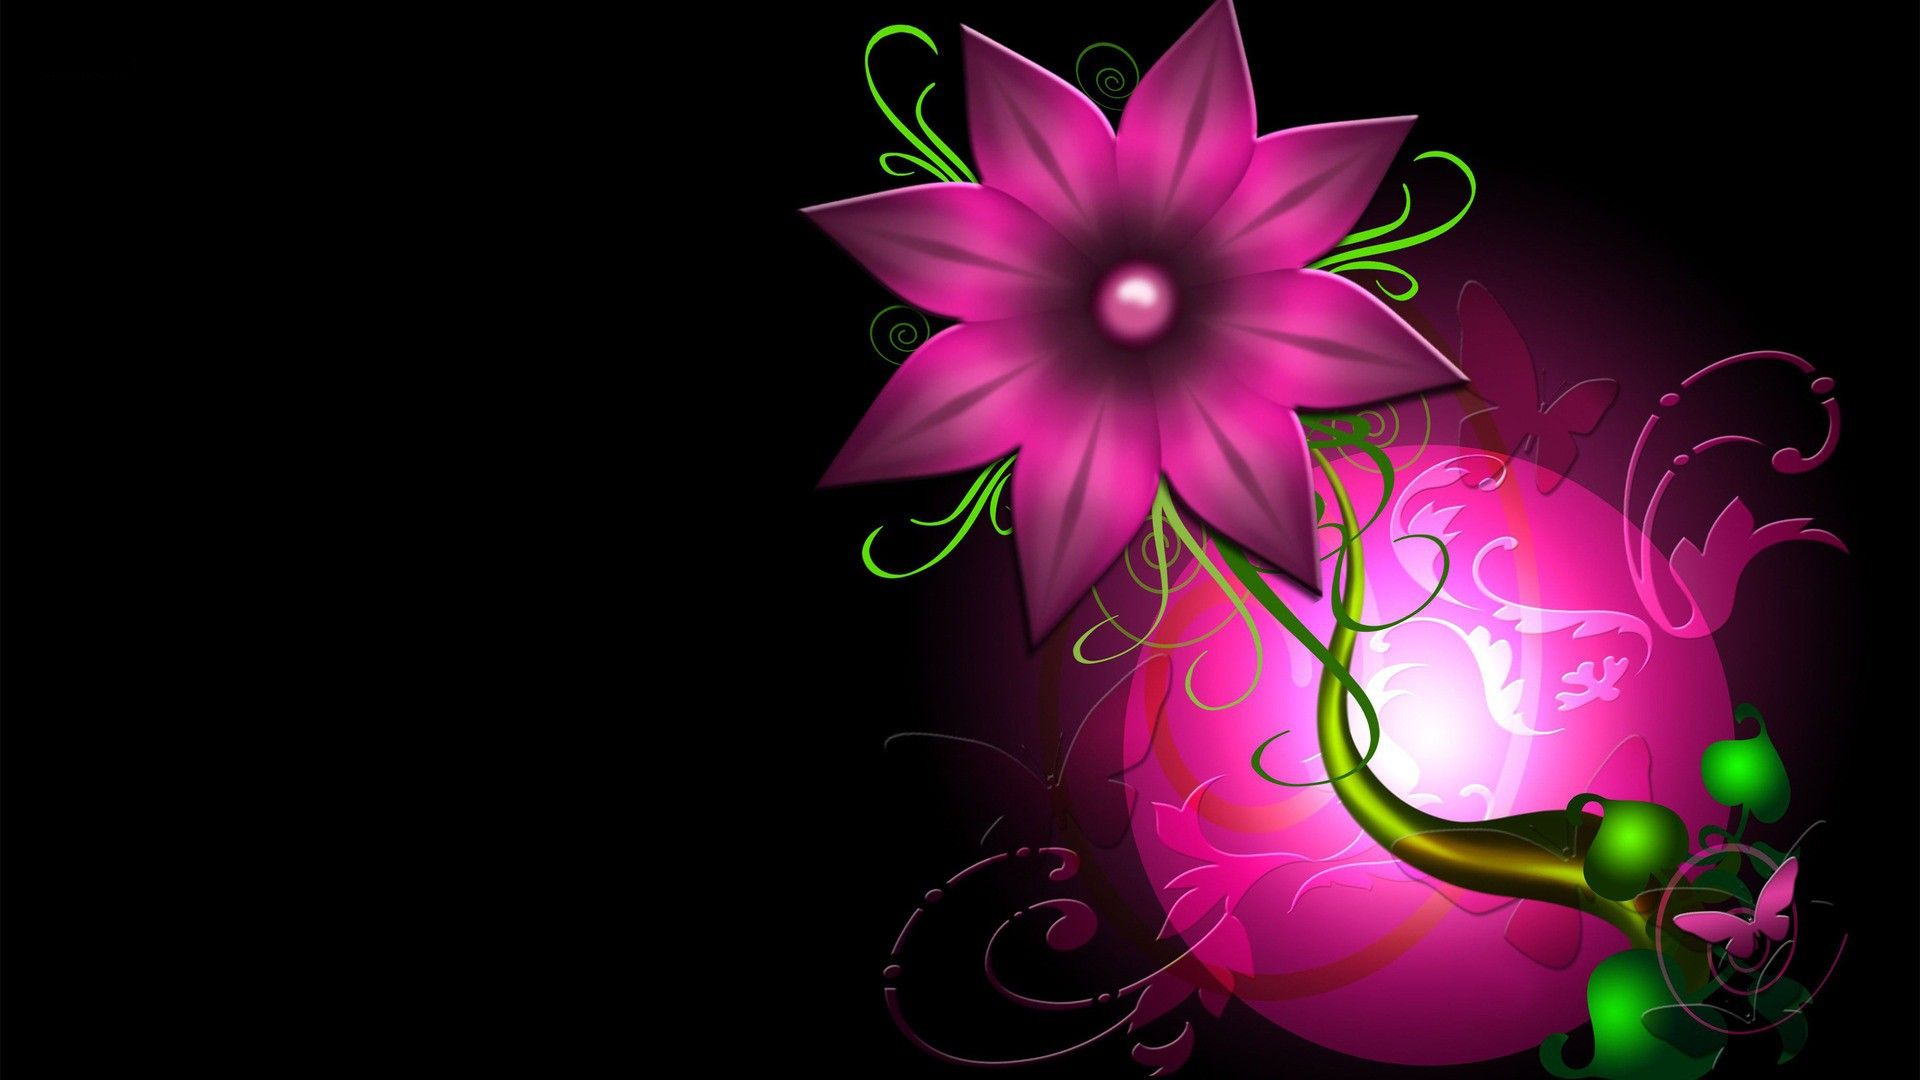 Pink Flower Hd Wallpapers 1080p Hd Wallpapers With Images